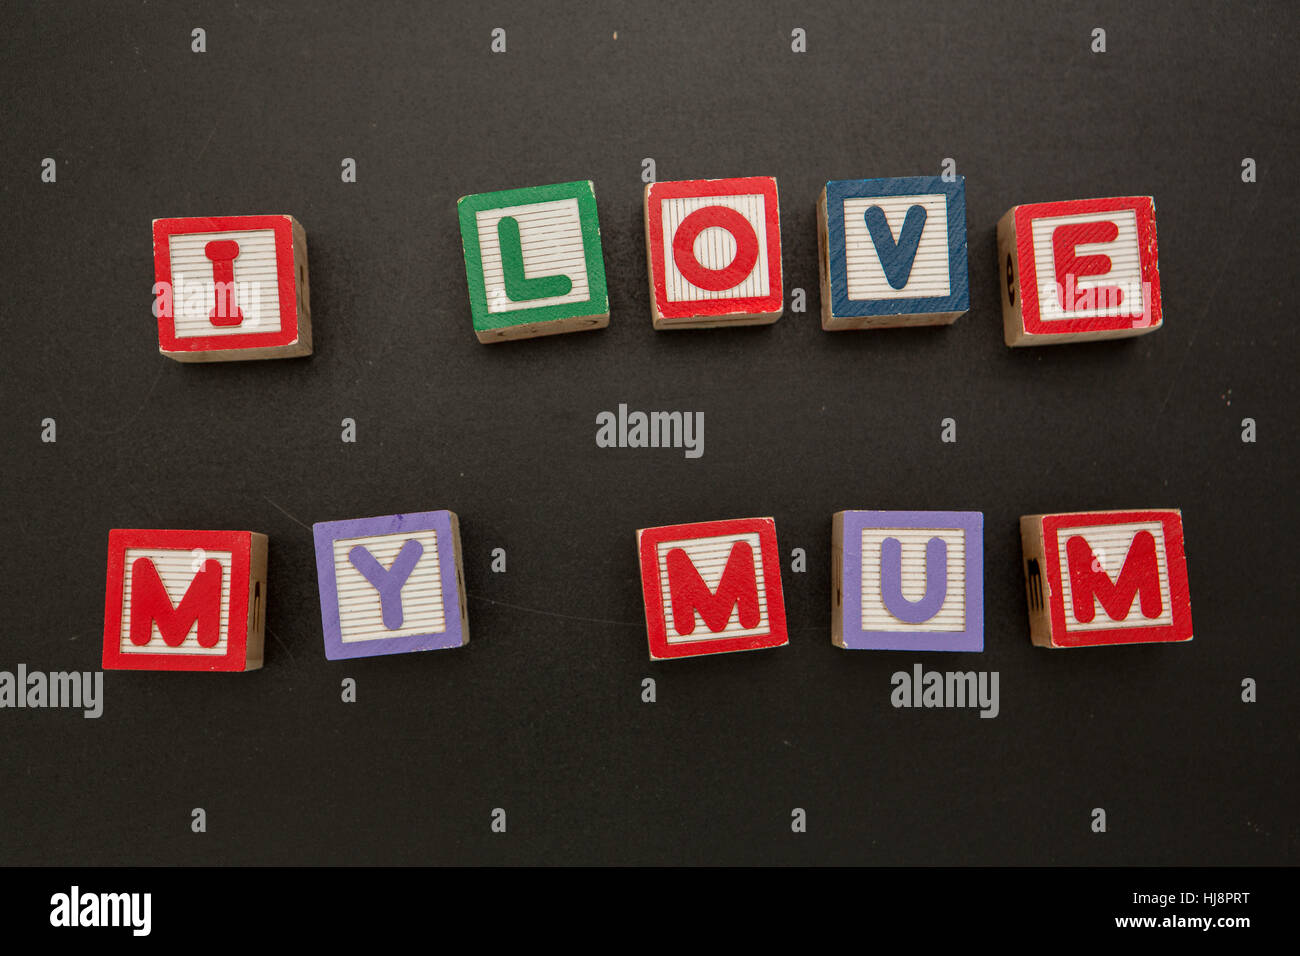 I love my mum message in blocks on chalkboard Stock Photo